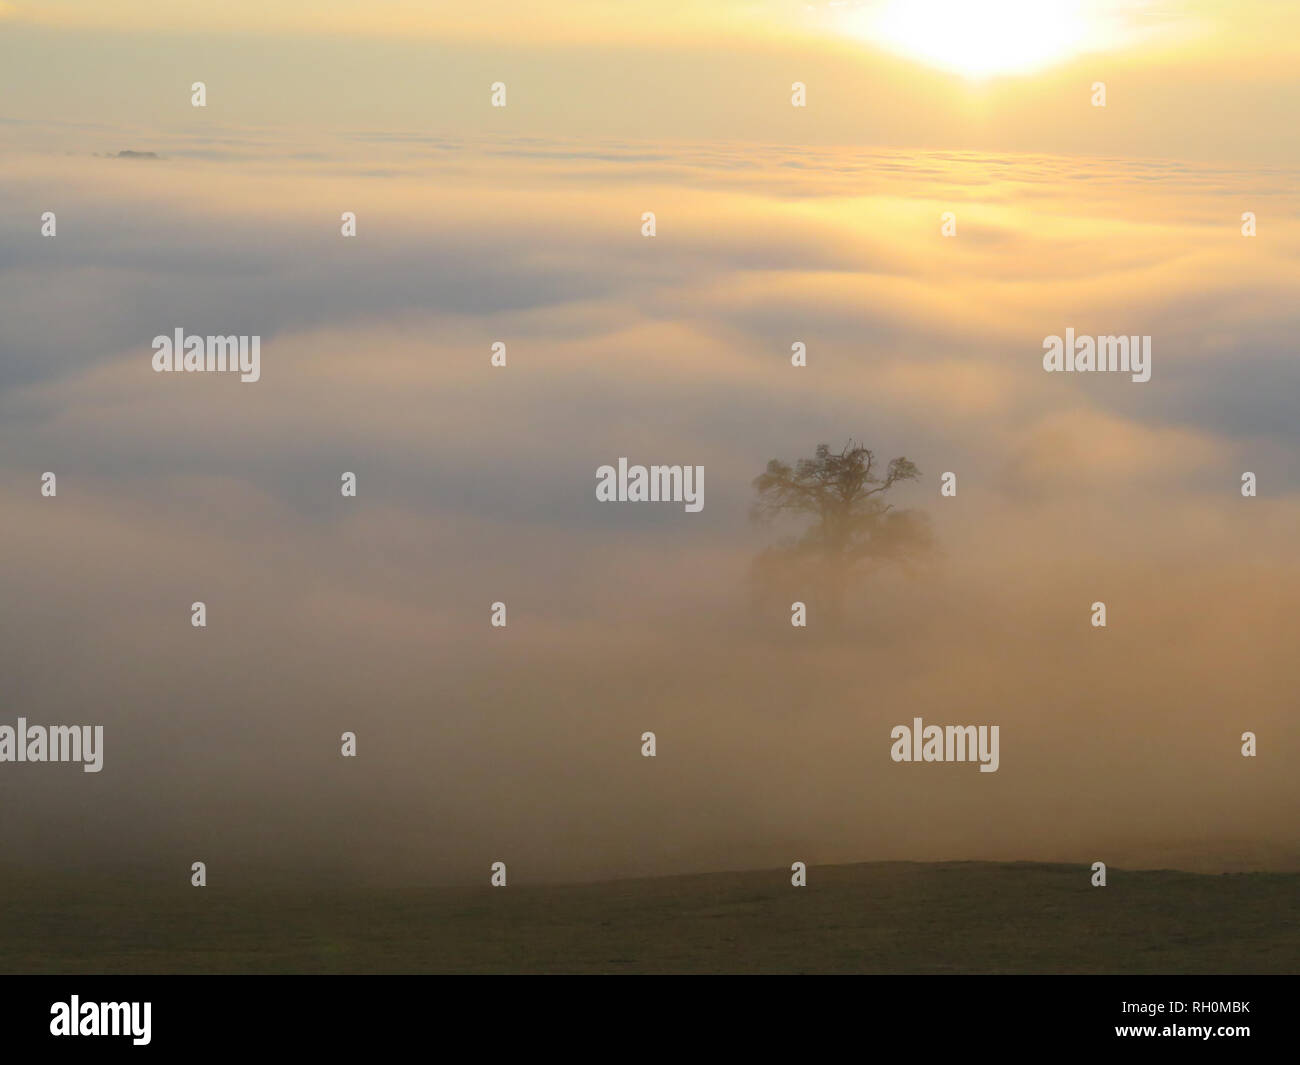 UK Weather: Unique foggy conditions at sunset in North Yorkshire near Easingwold. The recent cold spell continues and in the late afternoon the fog and mist was seen across the local fields and valleys in the Howardian Hills and Vale of York. Credit: credit: Matt Pennington / PennPix/Alamy Live News Stock Photo